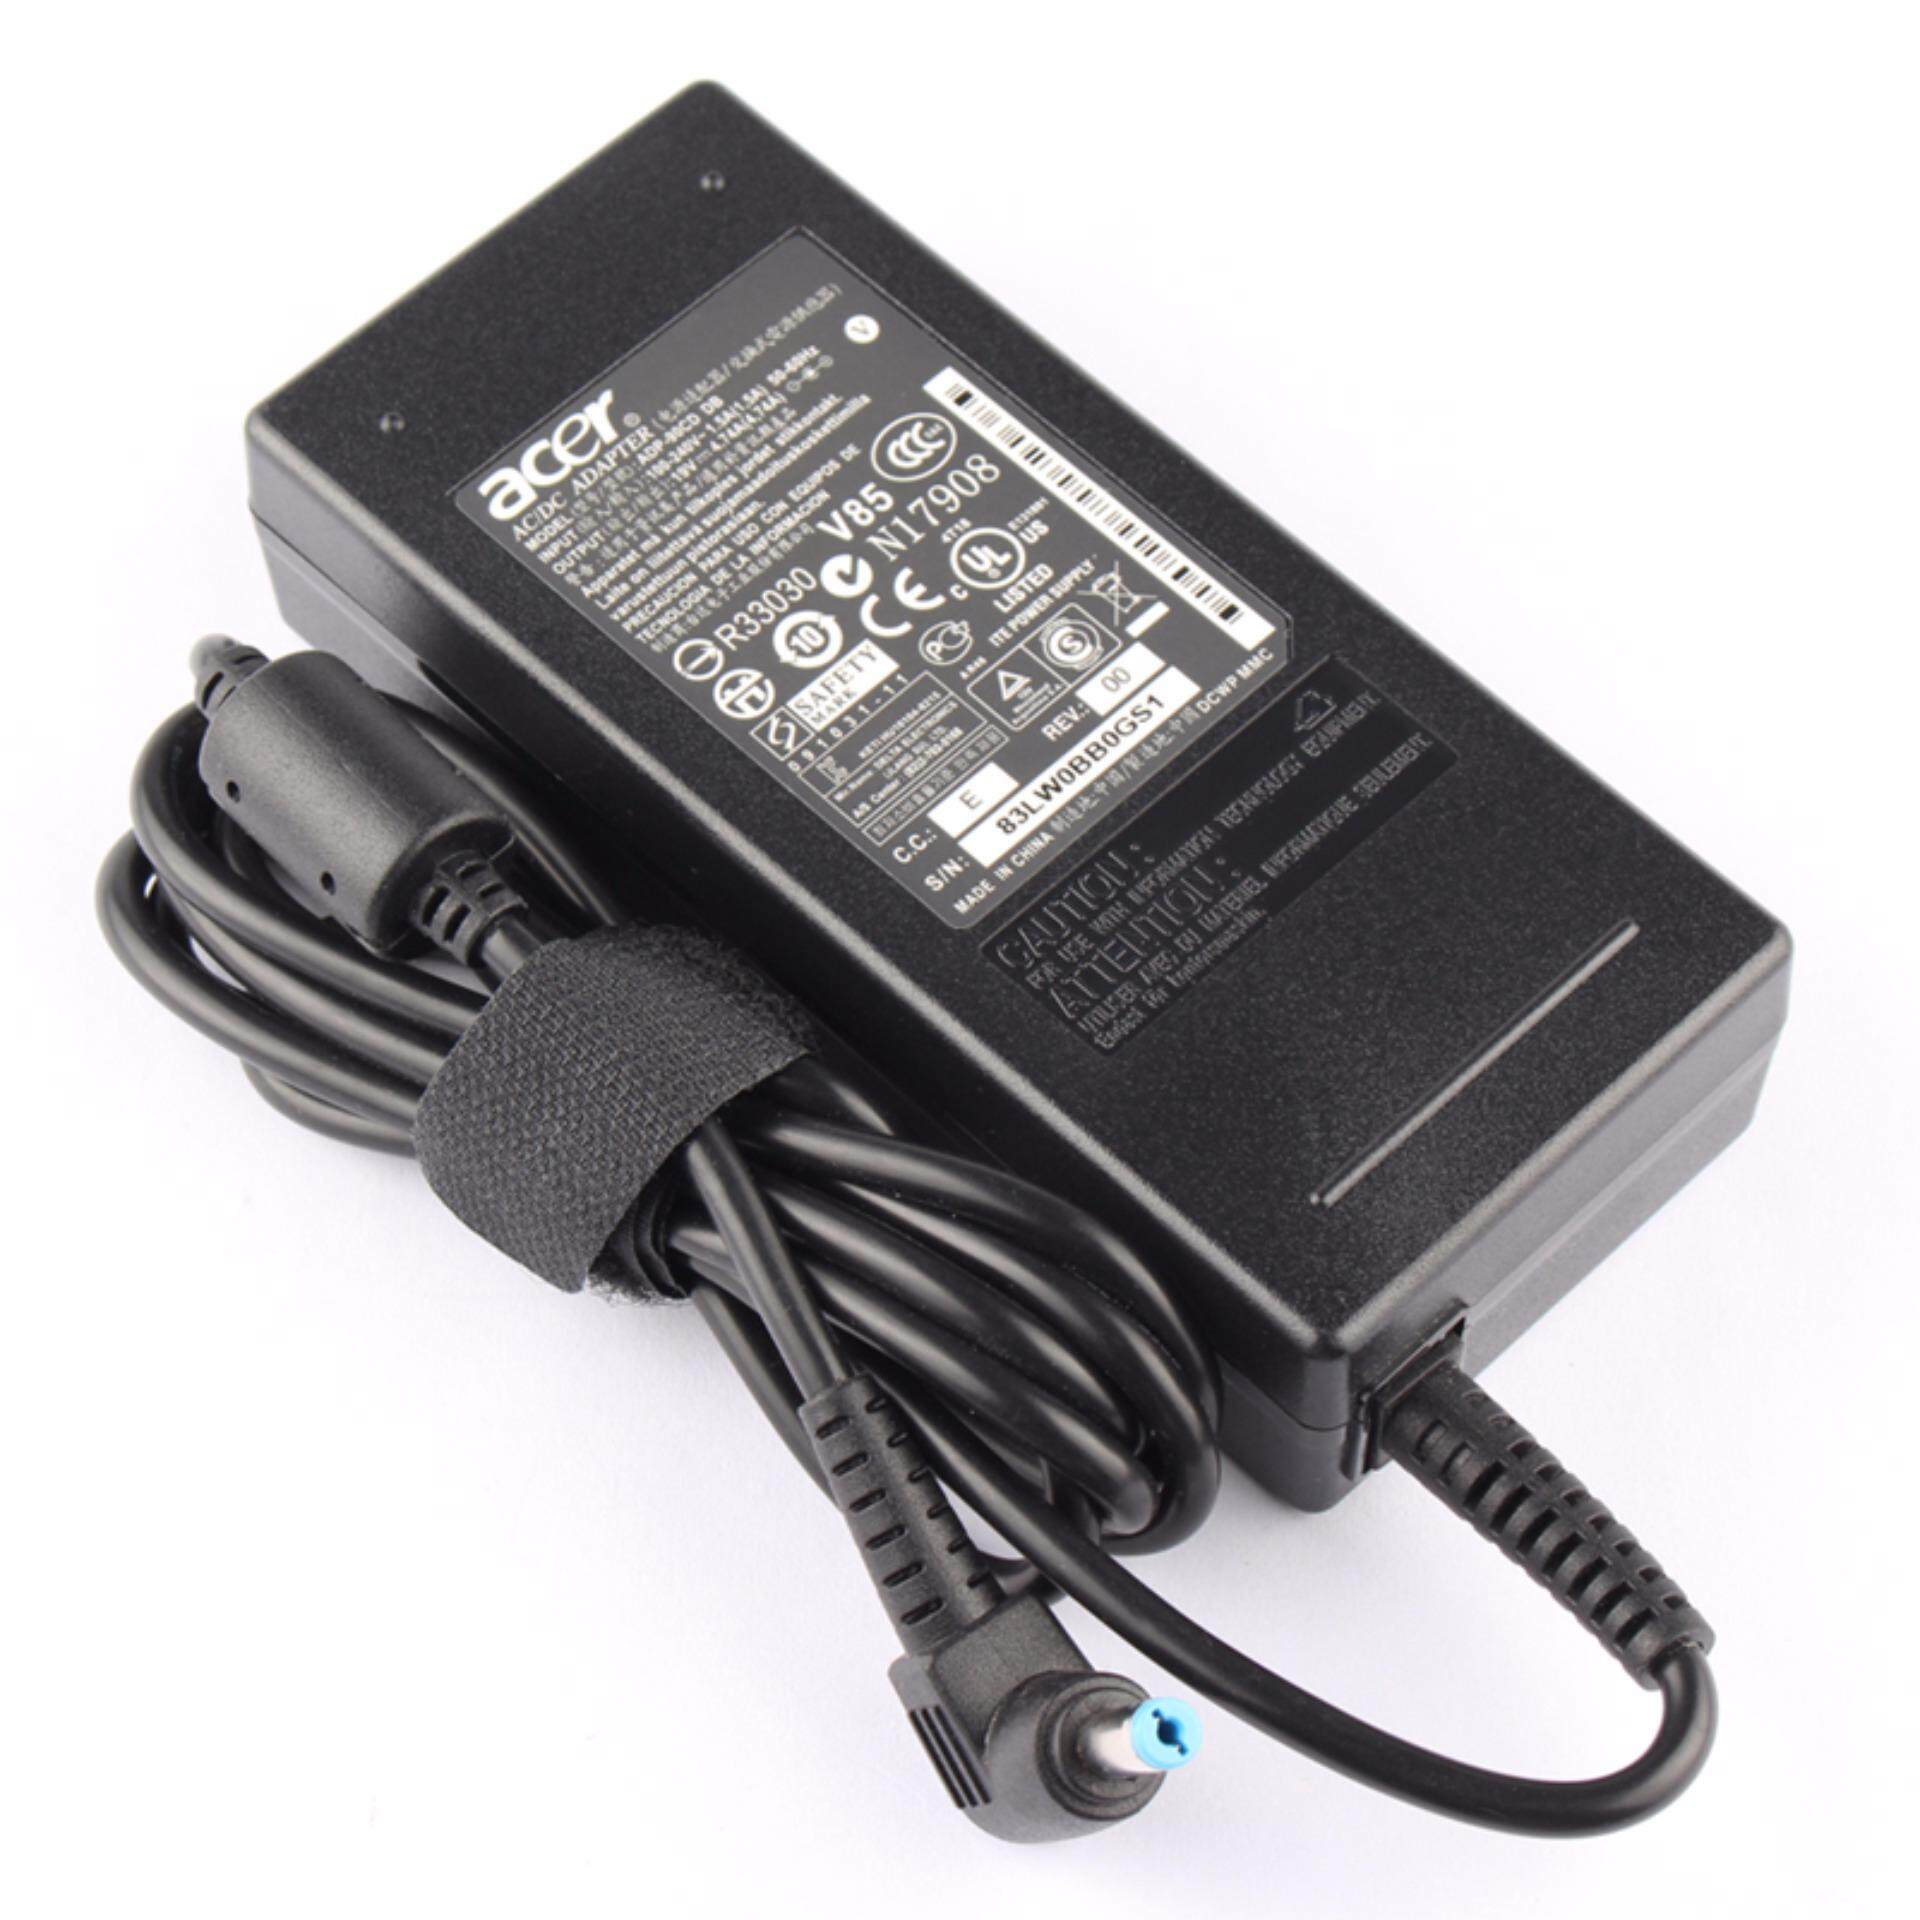 Laptop AC Adapter Charger for ADP-90CD BDH ADP-90CD DB ADP-90RH B ADP-90SB BB Aspire 1202X E1-432P K40-10 K50-10 K50-20 MM1-571 V3-575TG, Aspire 1 A114-31-C4ZV 3 A314-31-C1ZV 5 A515-41G-16BQ, One 14 Z1401 (Black) 19V 4.74A (90W) 5.5*1.7mm - intl